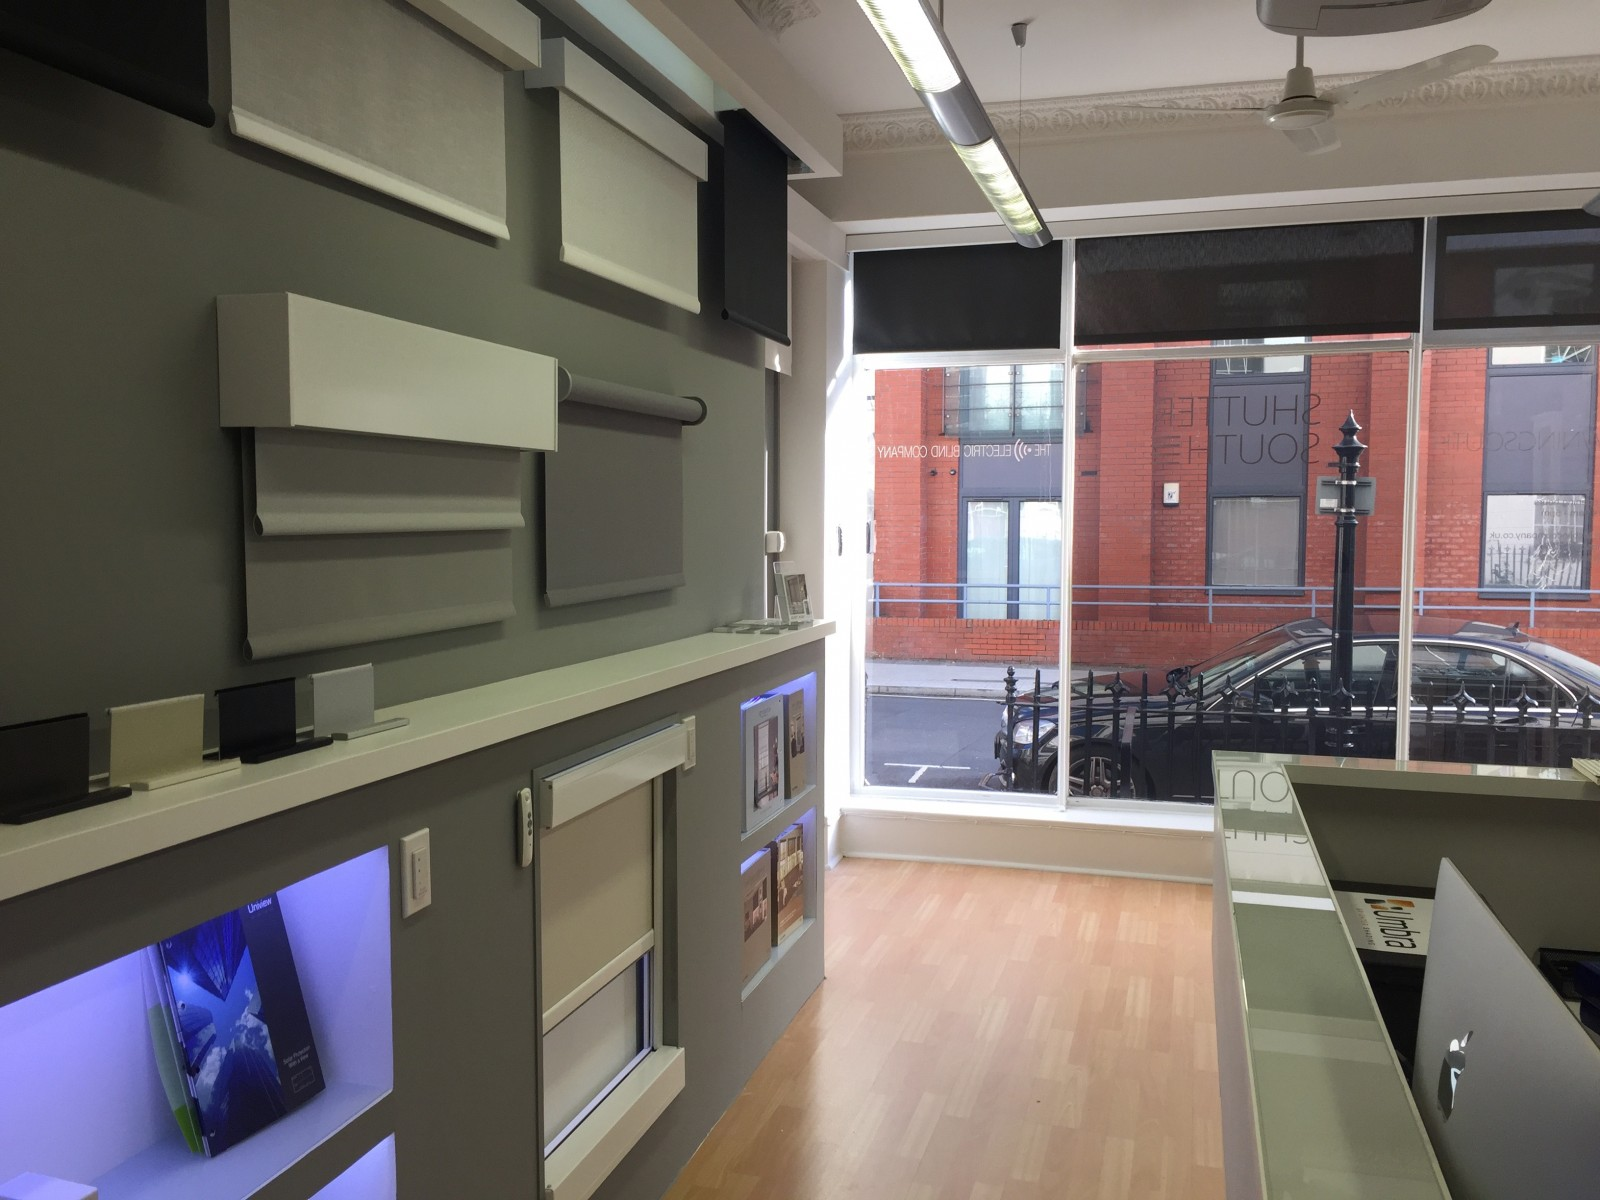 Electric Blinds Pocket - The Electric Blind Company Showroom - Southampton